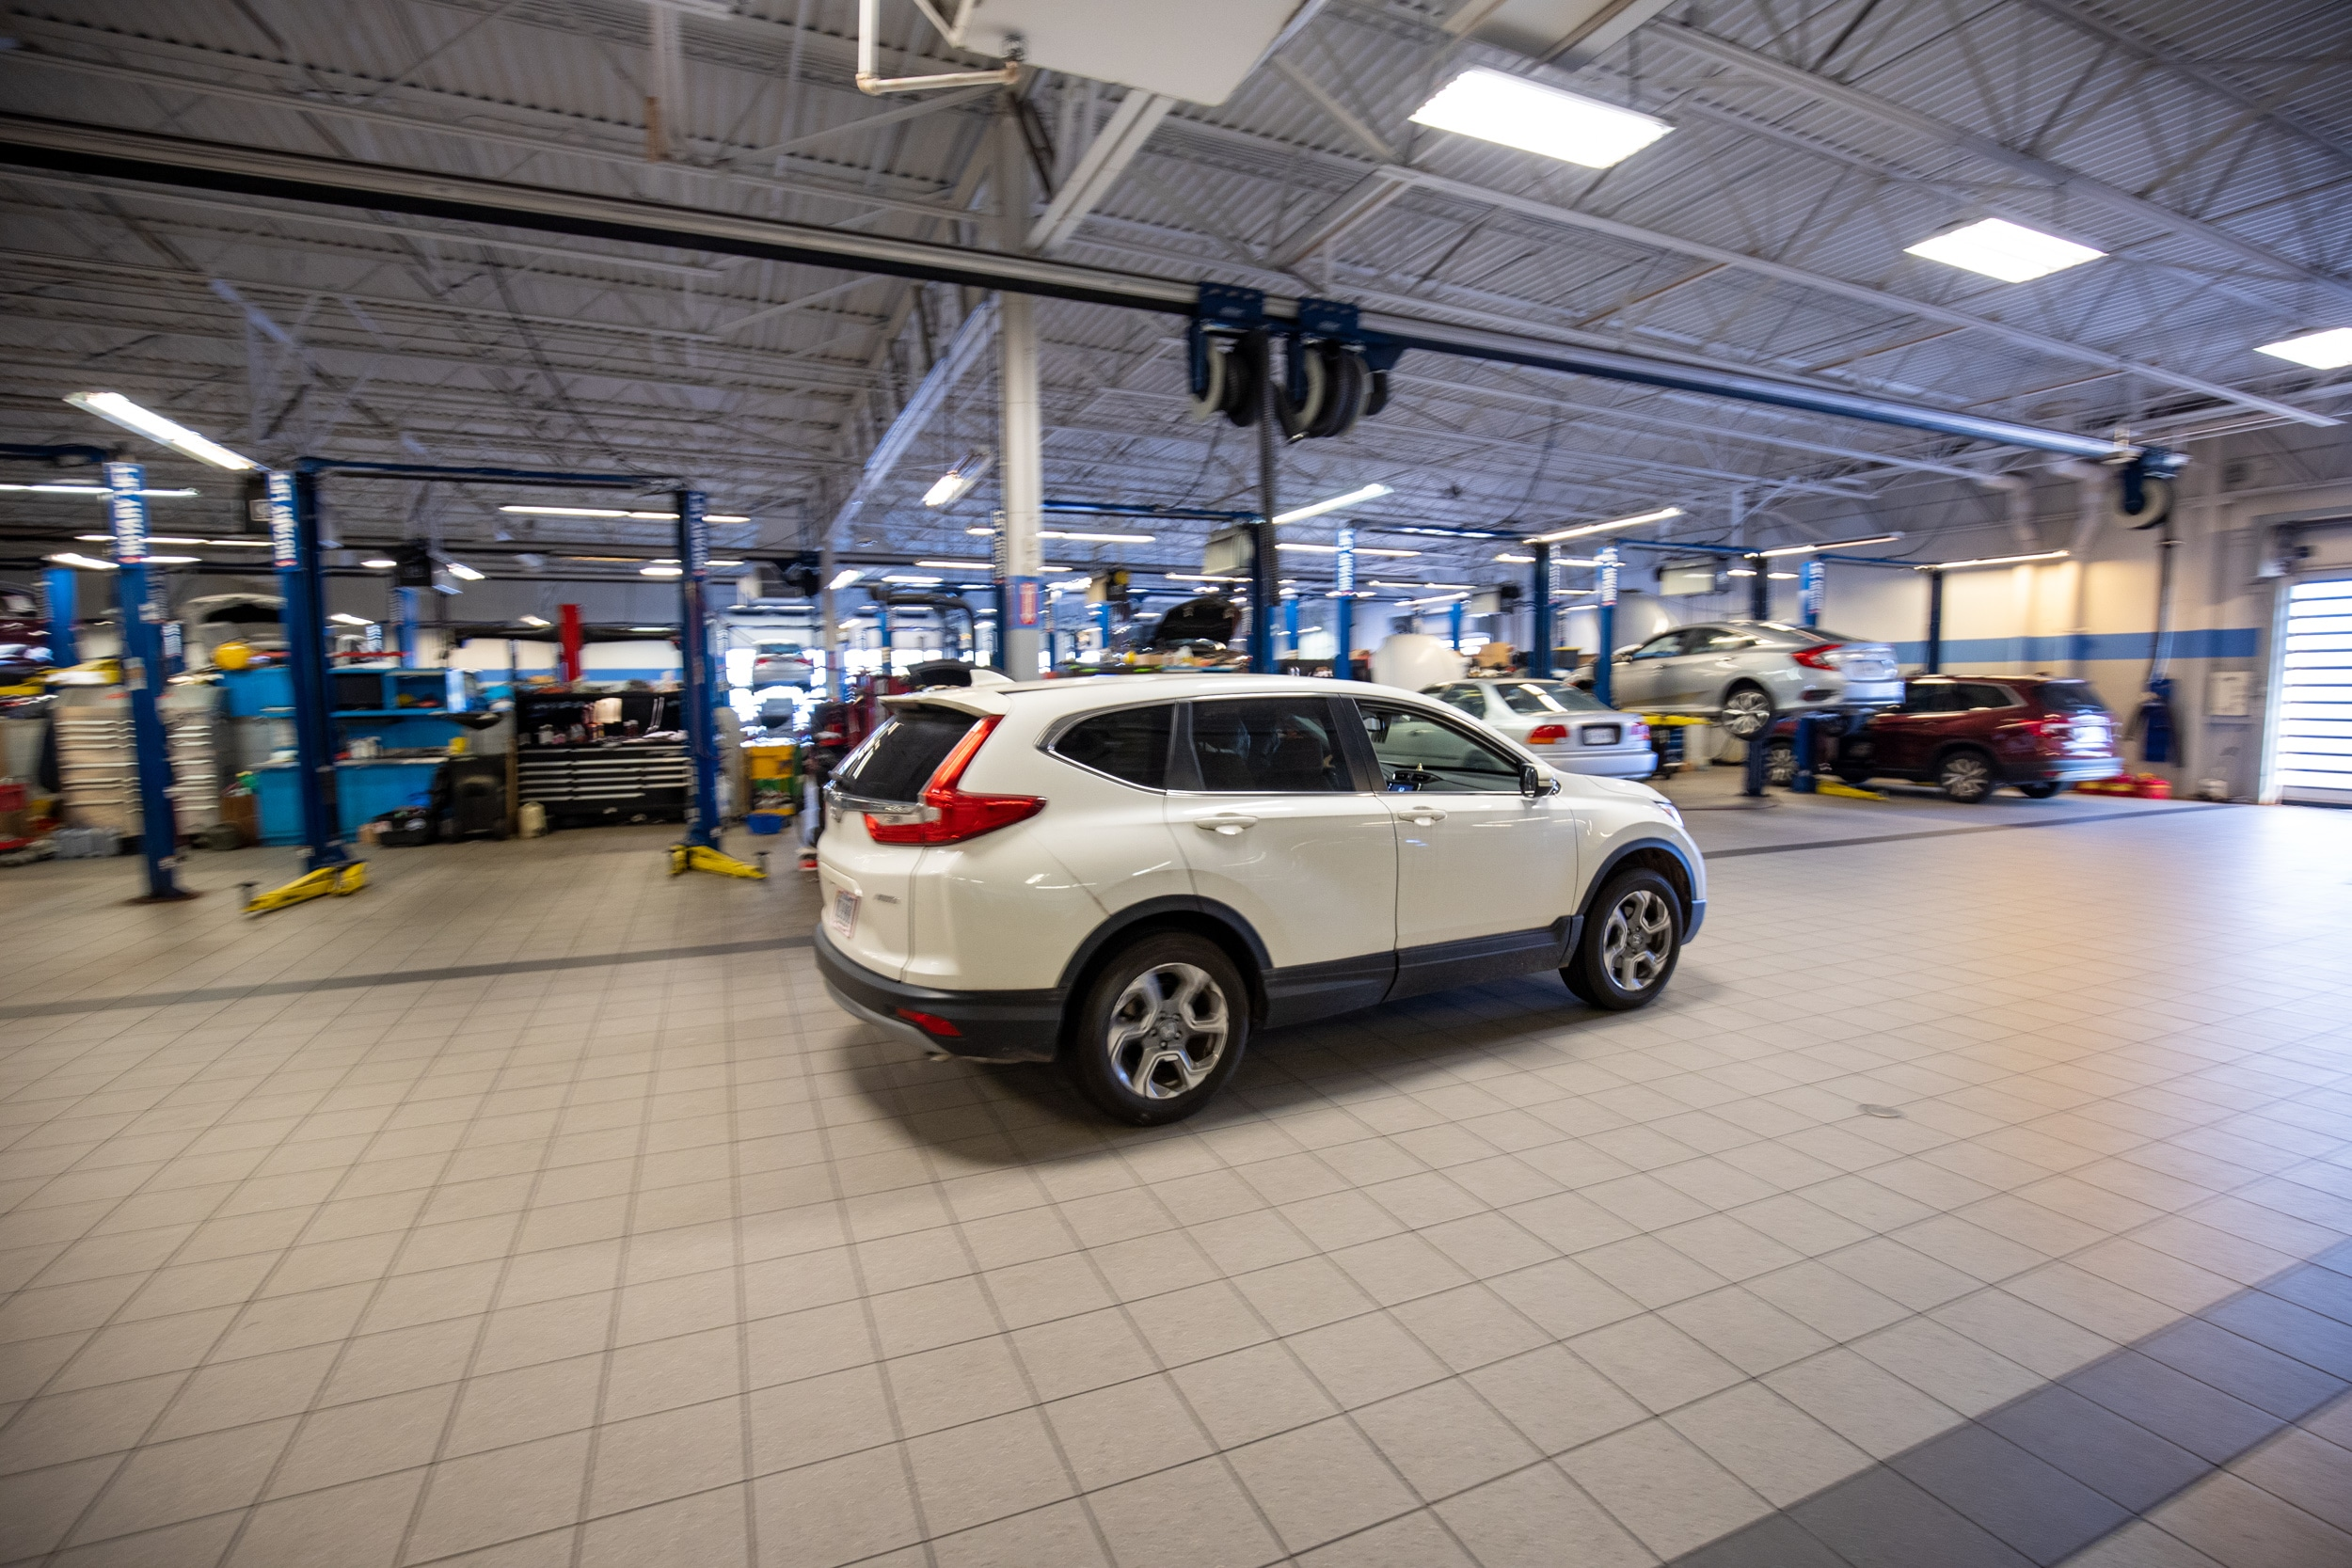 AutoNation Honda Dulles Express Maintenance